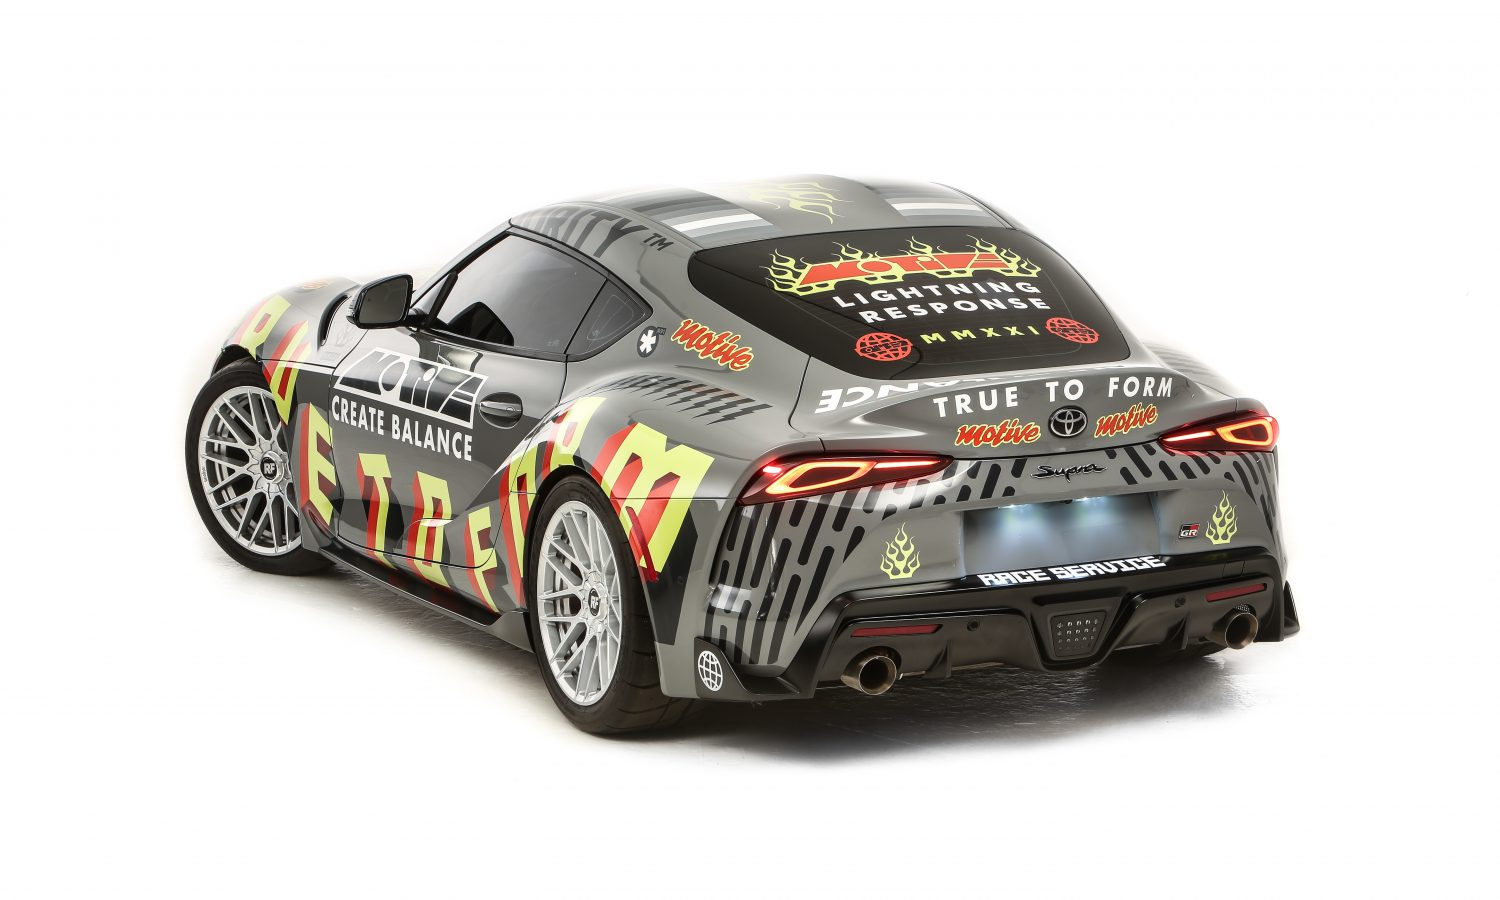 Toyota and Race Service Partner to Create the Ornamental Conifer GR Supra